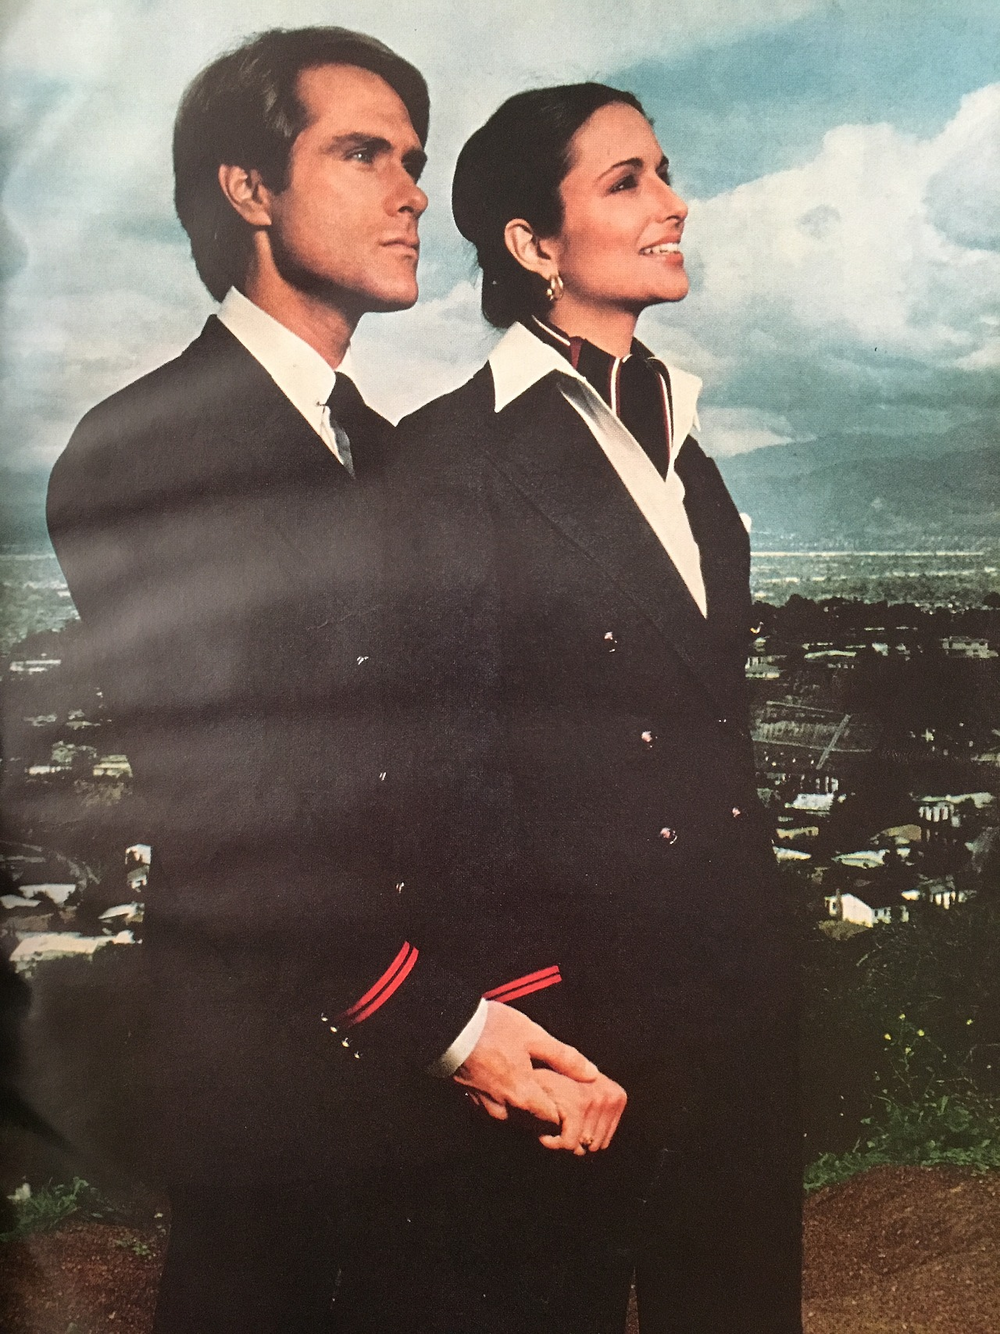 """""""TWA and Ralph Lauren. The Professionals. In Flight. In Fashion."""" TWA decided to approach Ralph Lauren for their new flight attendant uniforms in 1978. These uniforms ushered in a new era of polished professionalism as opposed to the colorful and playful Valentino uniforms from the'60s through the mid'70s. Vogue. June 1978."""